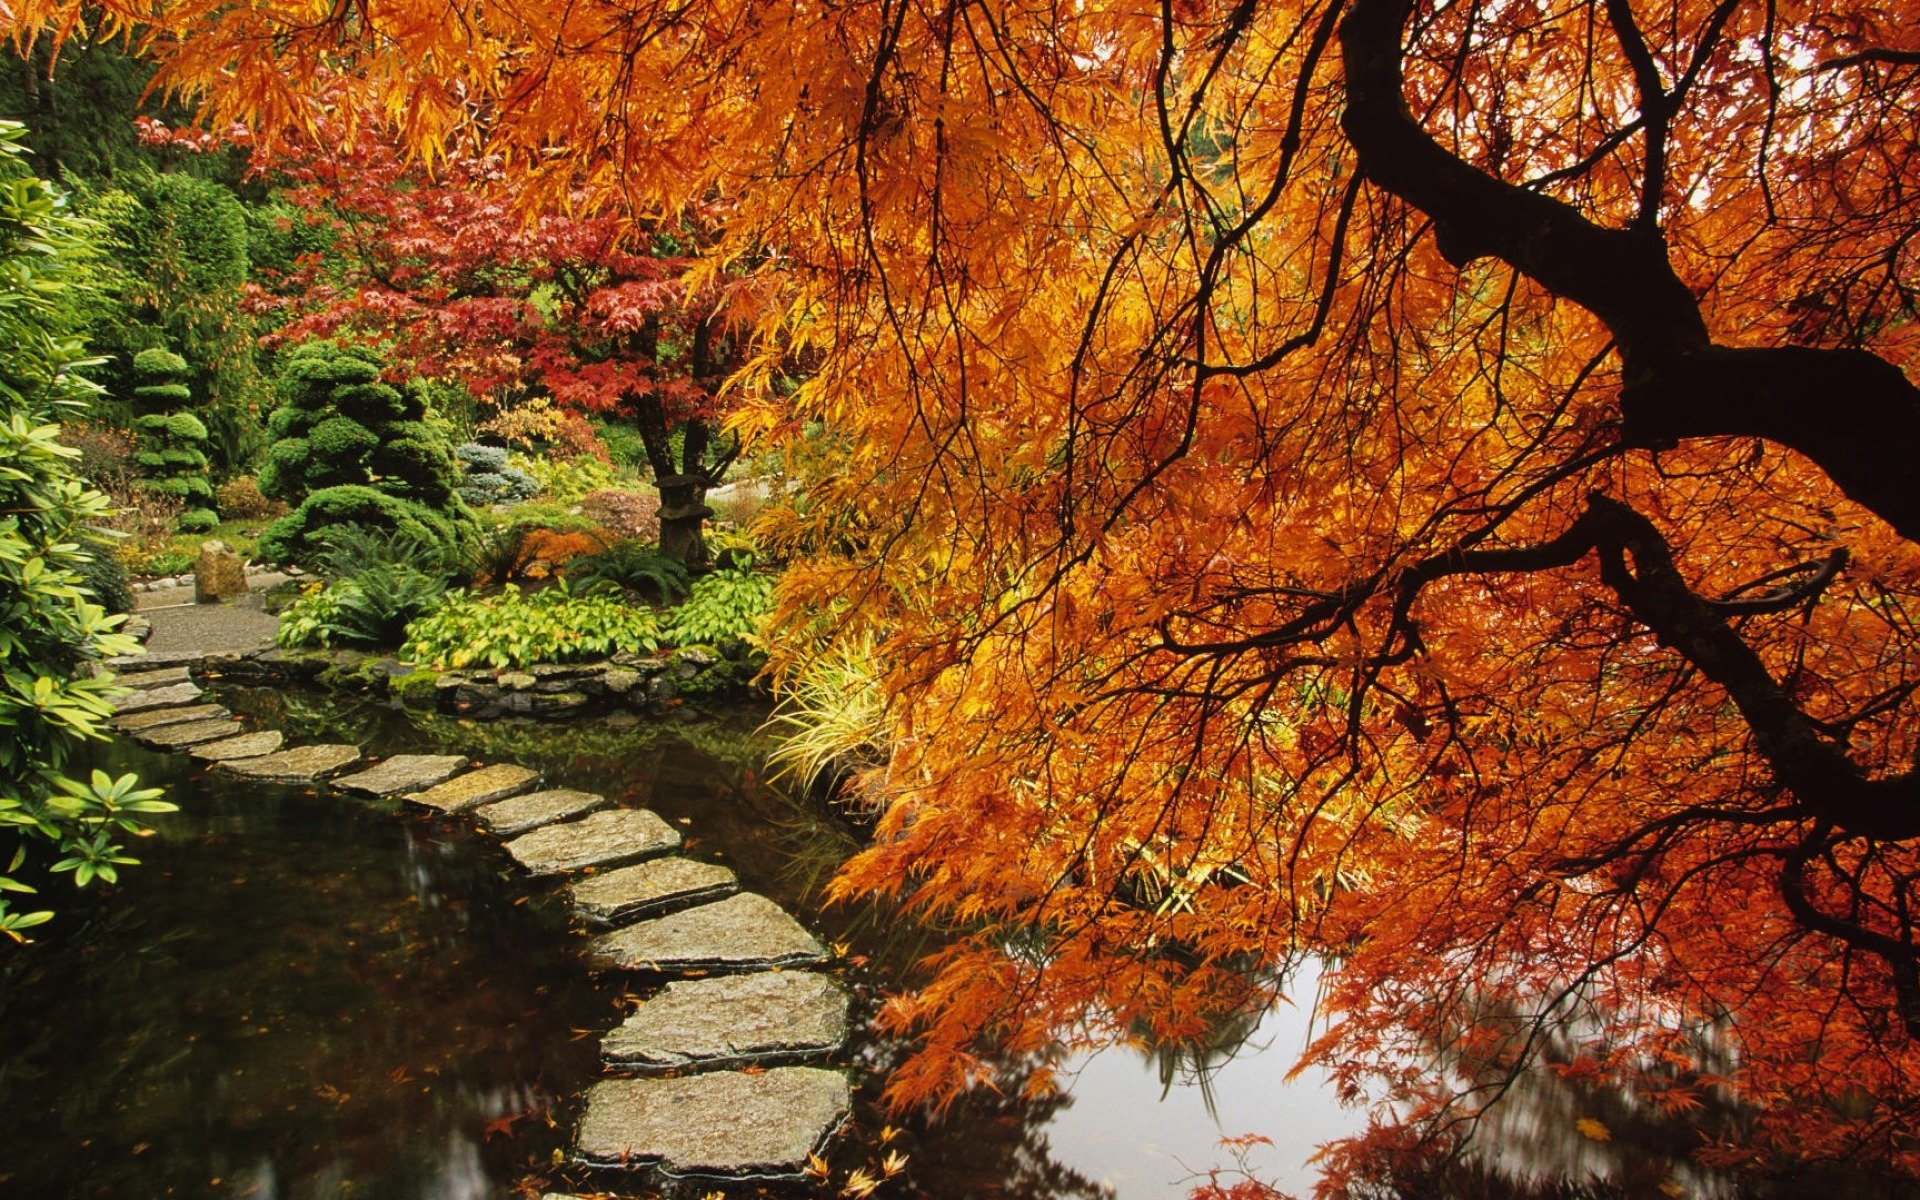 Best Japanese Garden Wallpaper ID:92643 For High Resolution Hd 1920x1200 PC